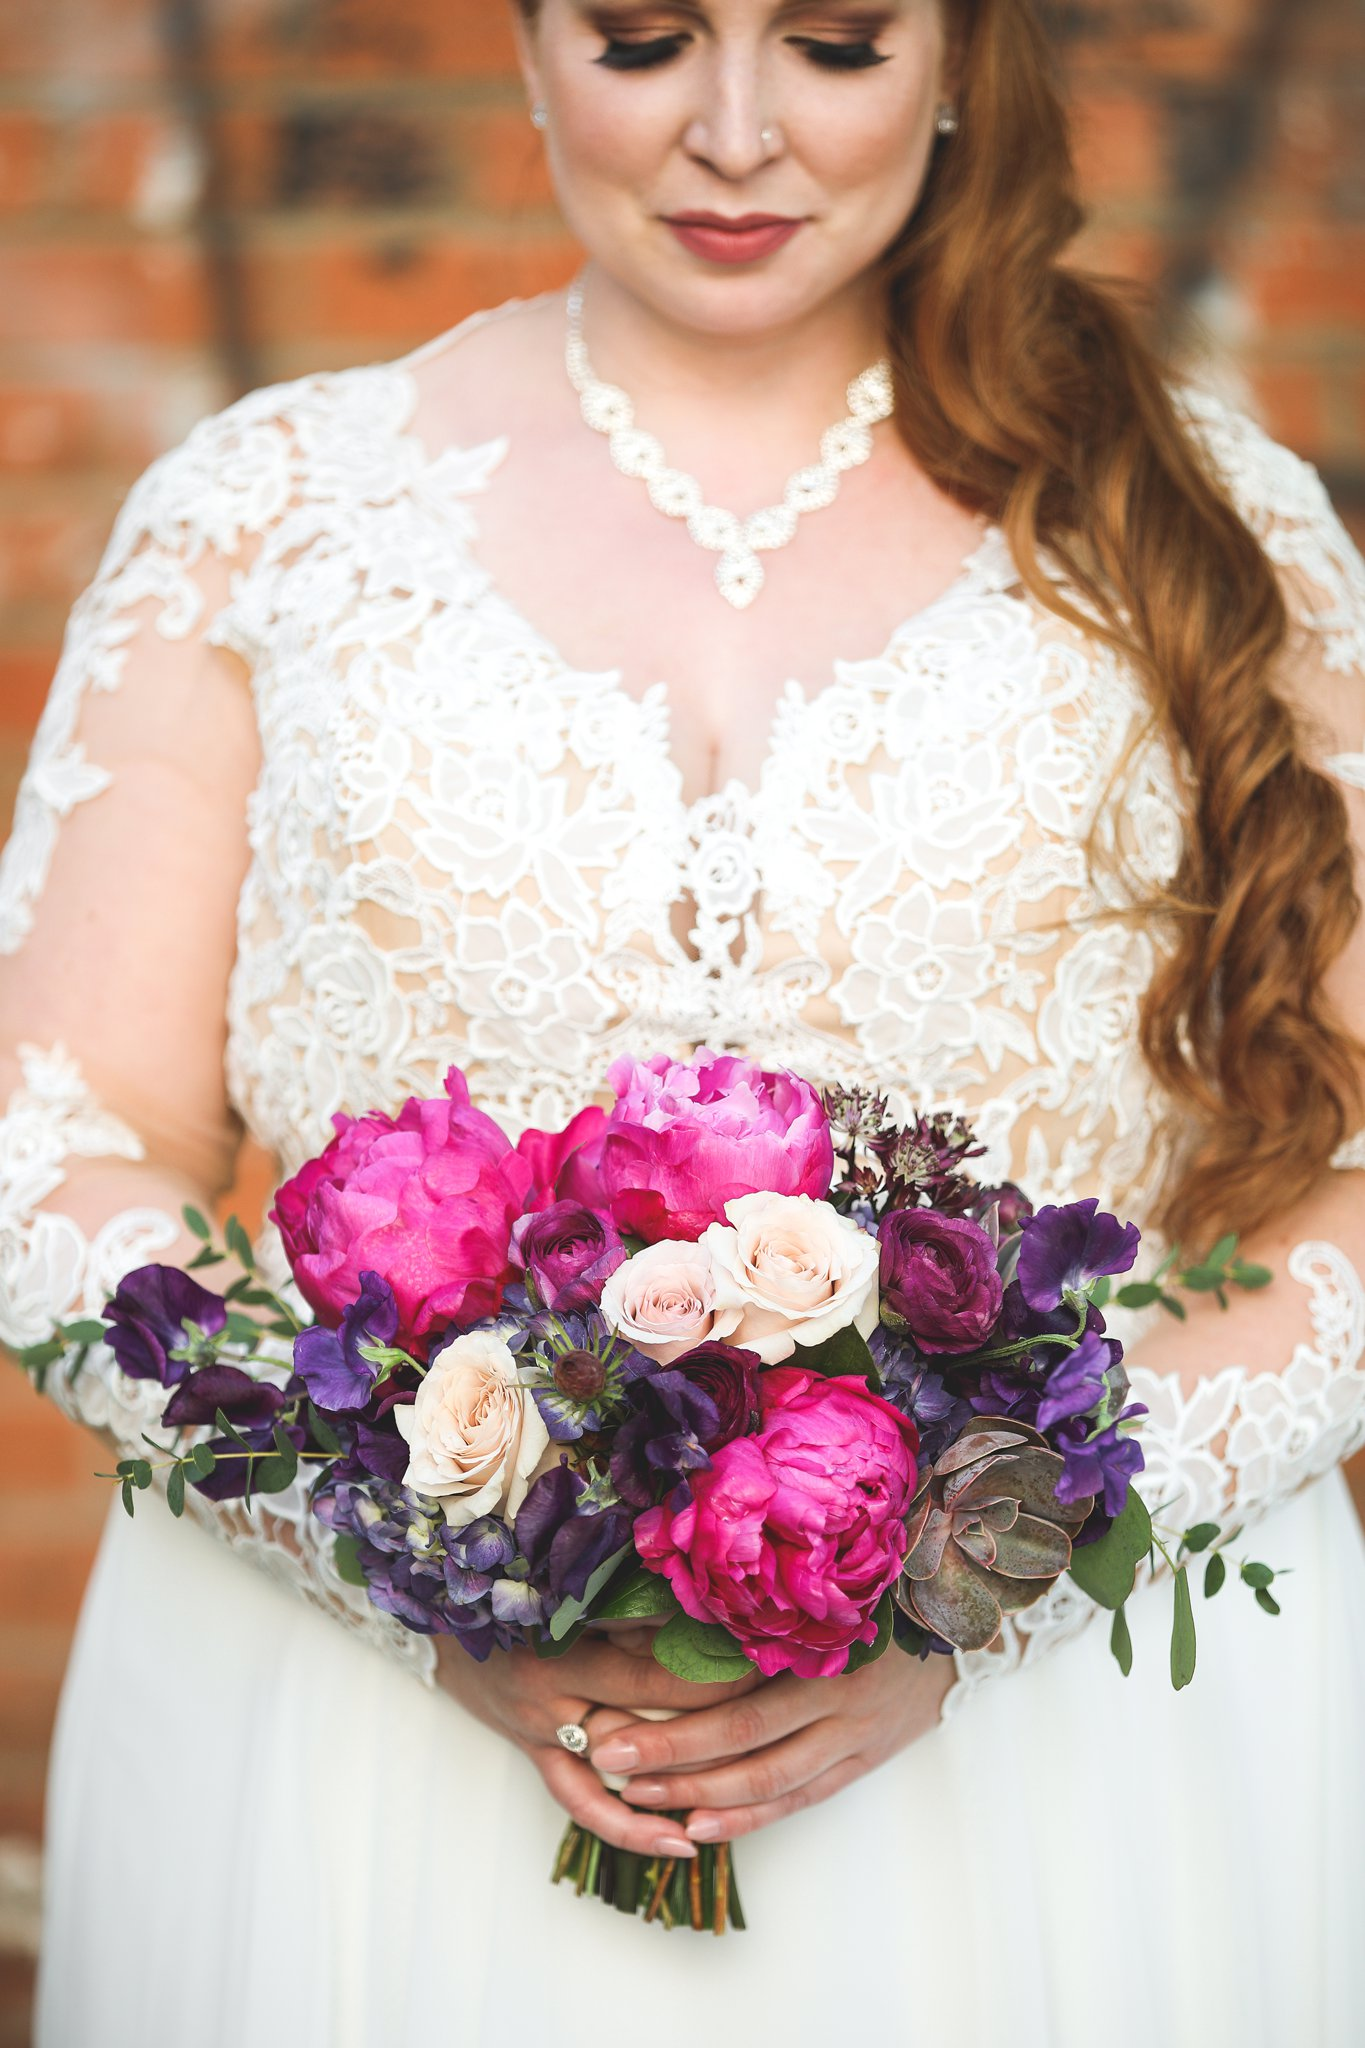 AshleyDaphnePhotography Calgary Wedding Photographer Rouge Inglewood Bride Groom Photography_0103.jpg